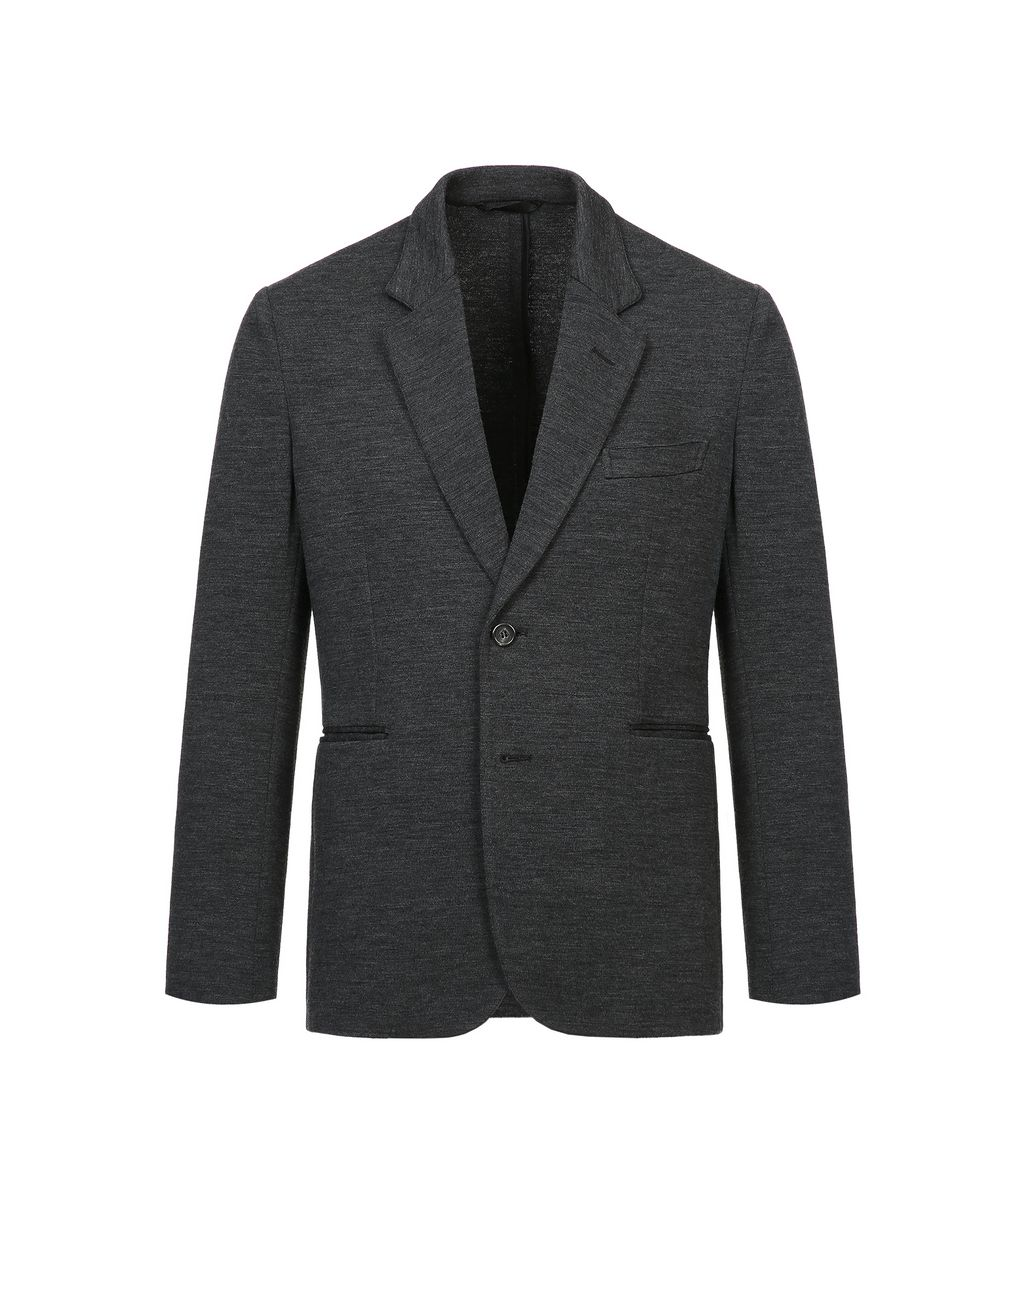 BRIONI Antrachite Grey Jersey Jacket Jackets Man f